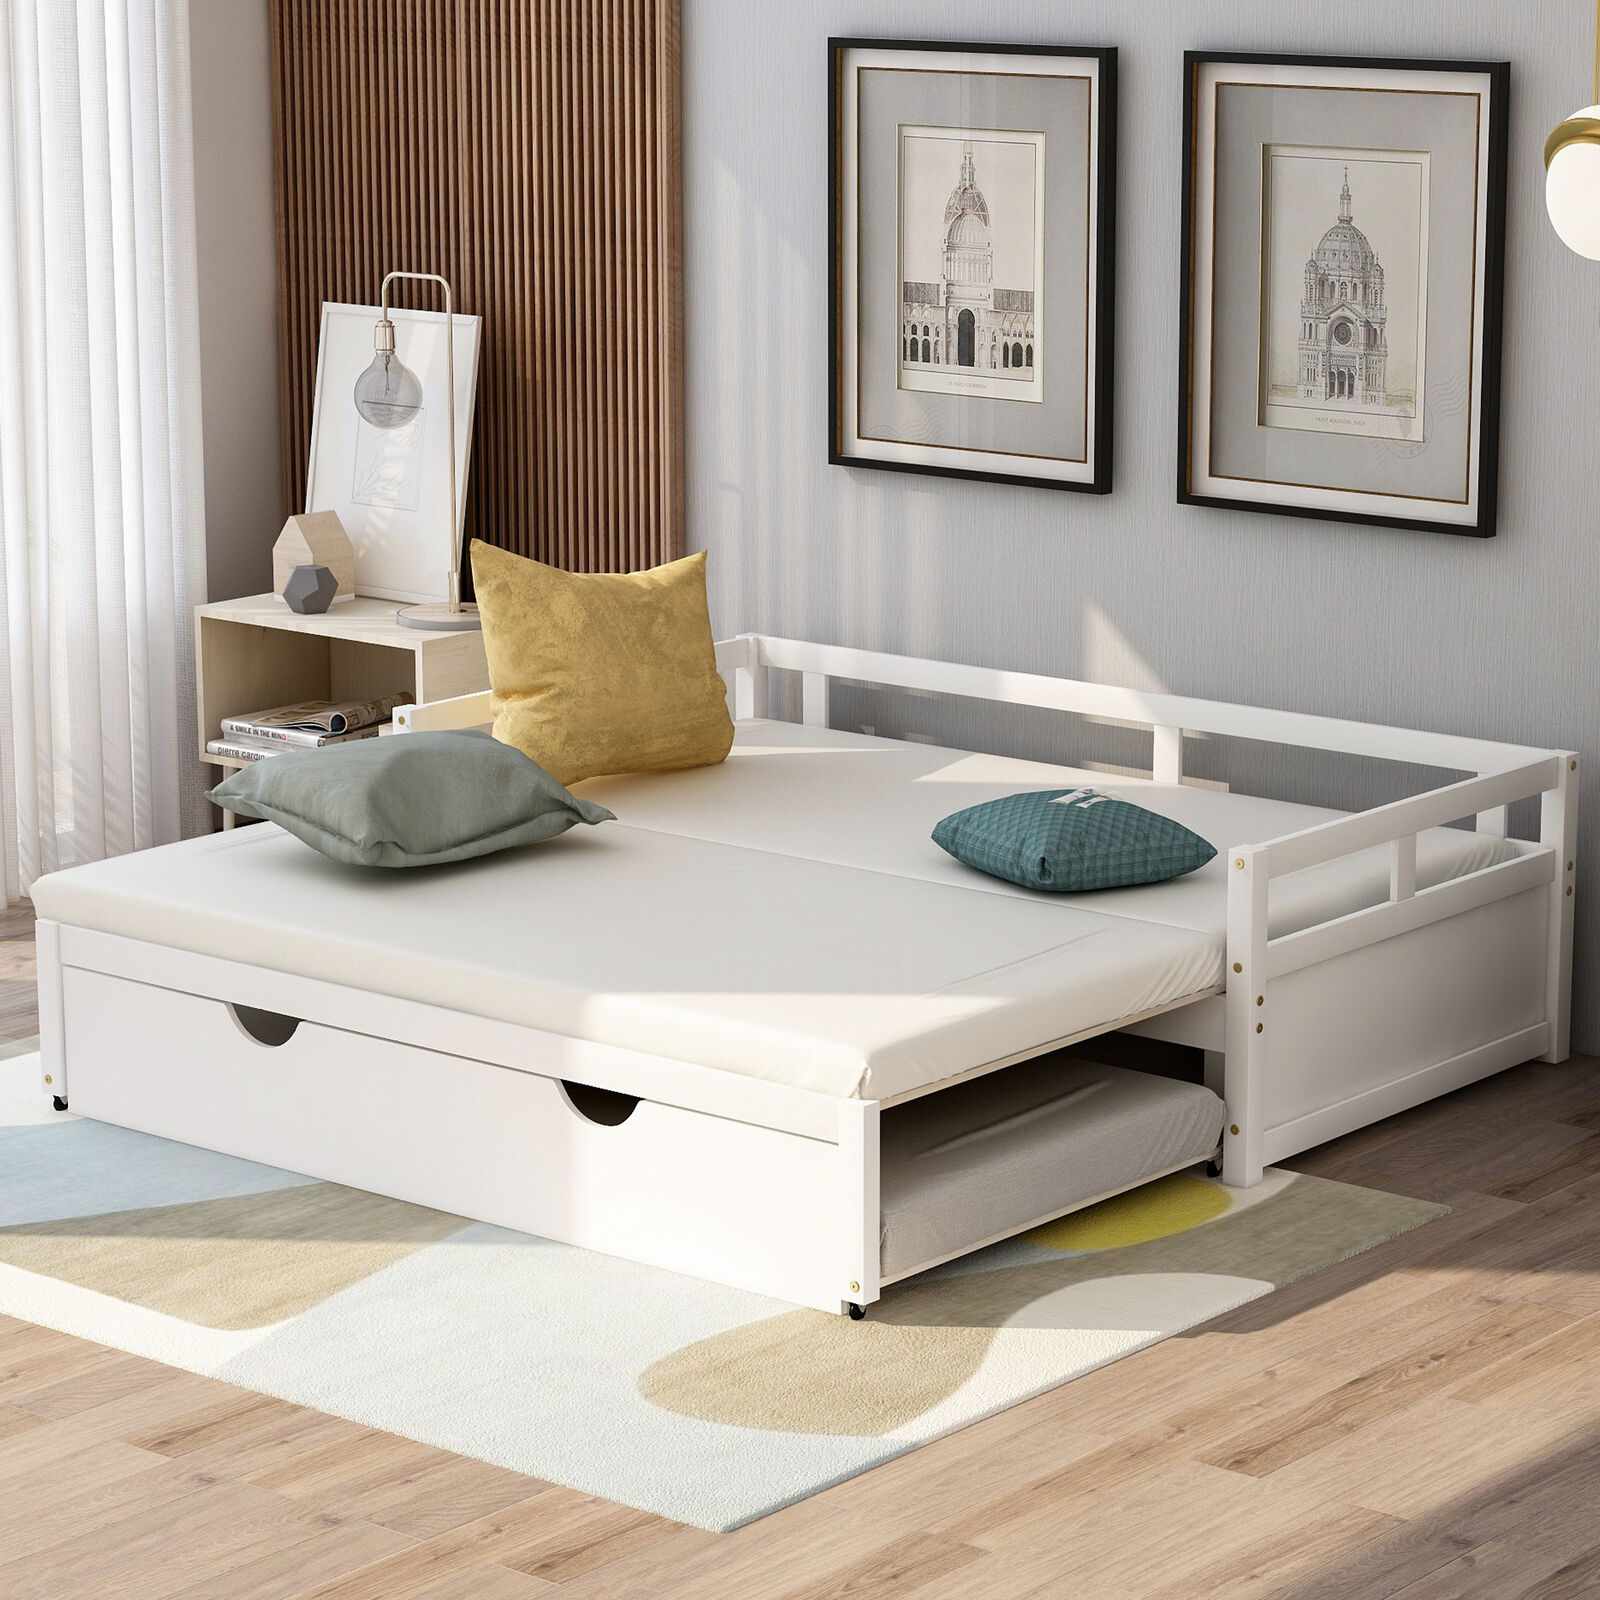 Bronze Metal Frame Twin Daybed W Trundle Set Space Saving Bed Bedroom Furniture For Sale Online Ebay